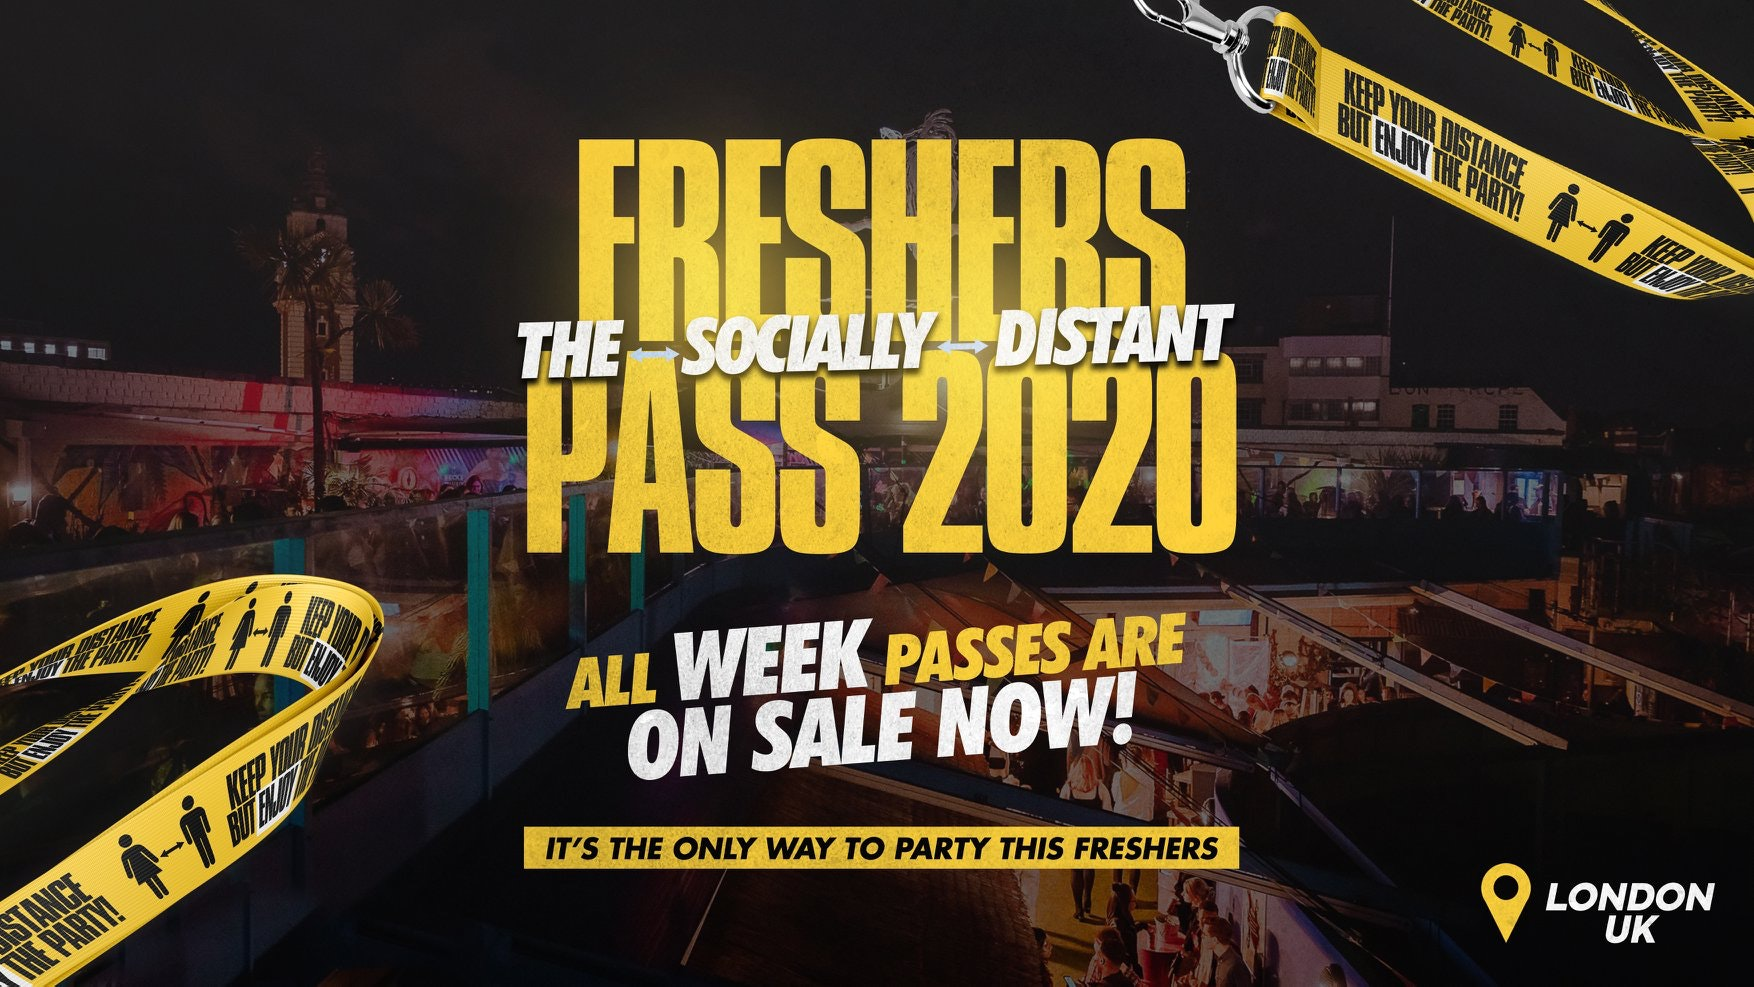 London Freshers 2020 – The Socially Distant Freshers Pass 🎉(On Sale Now!)